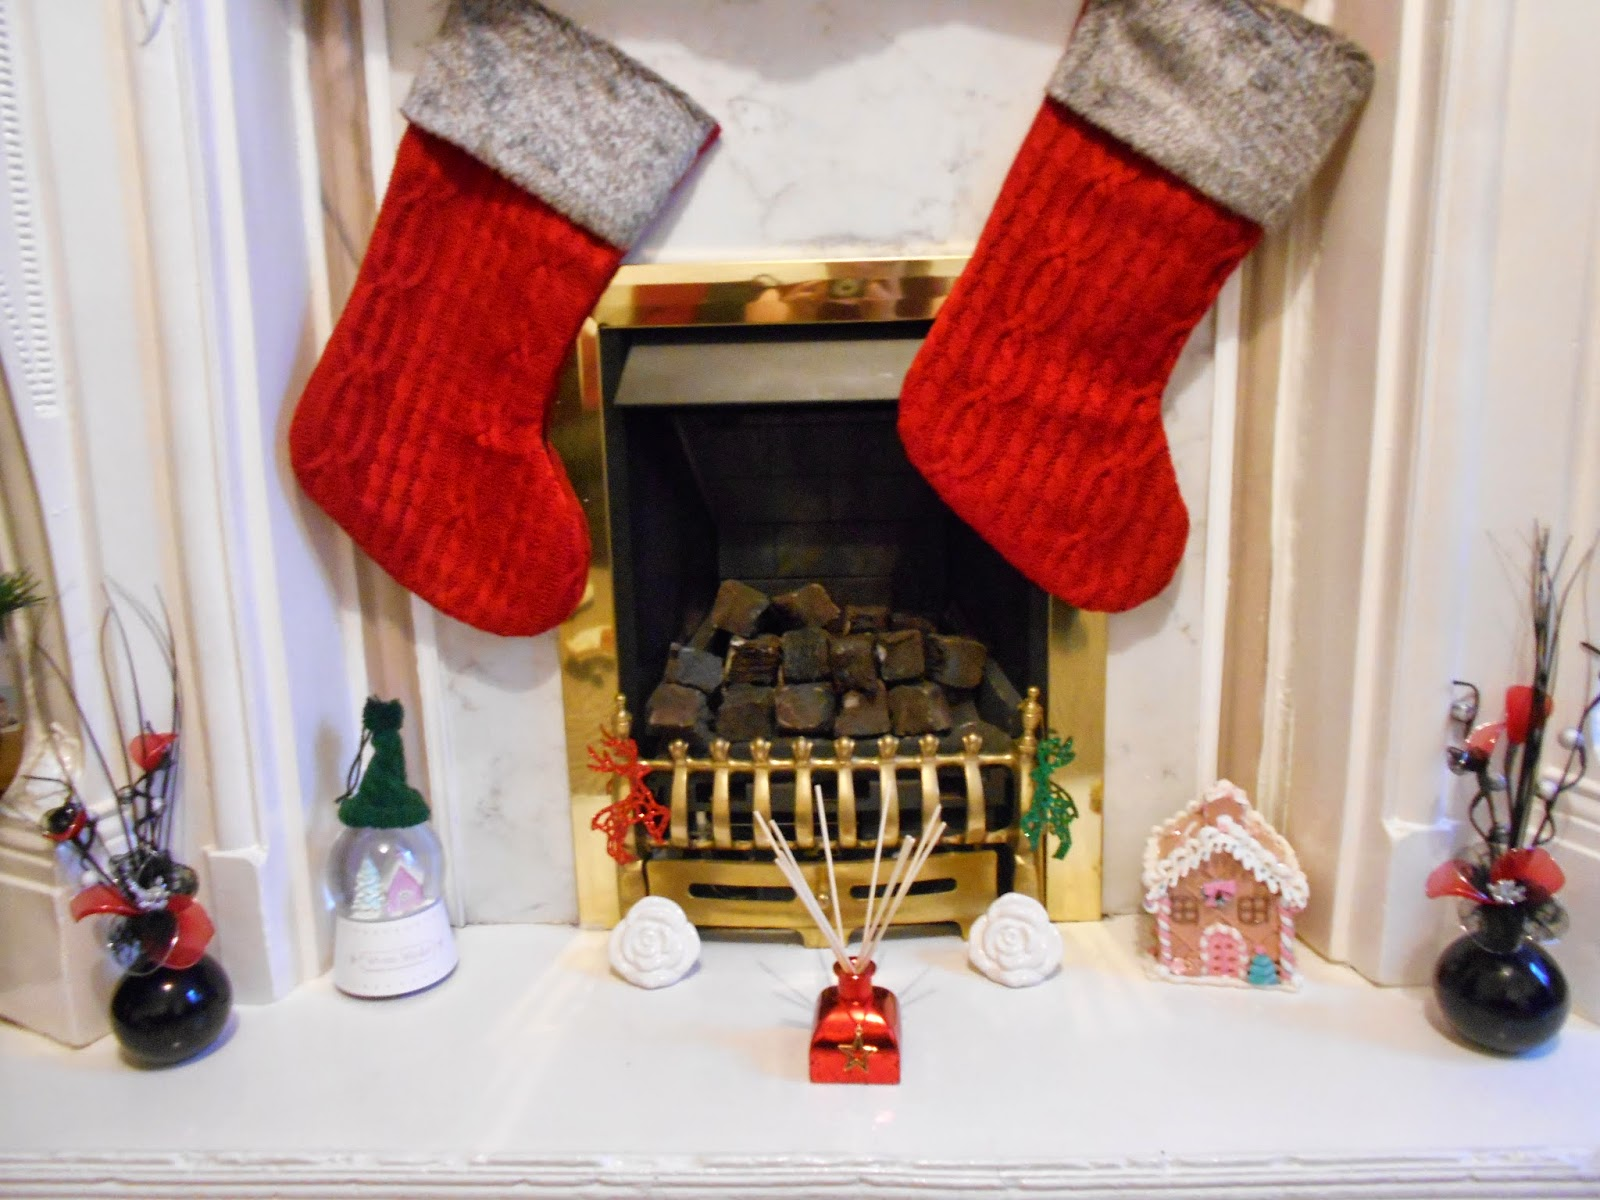 Christmas Fireplace 2014